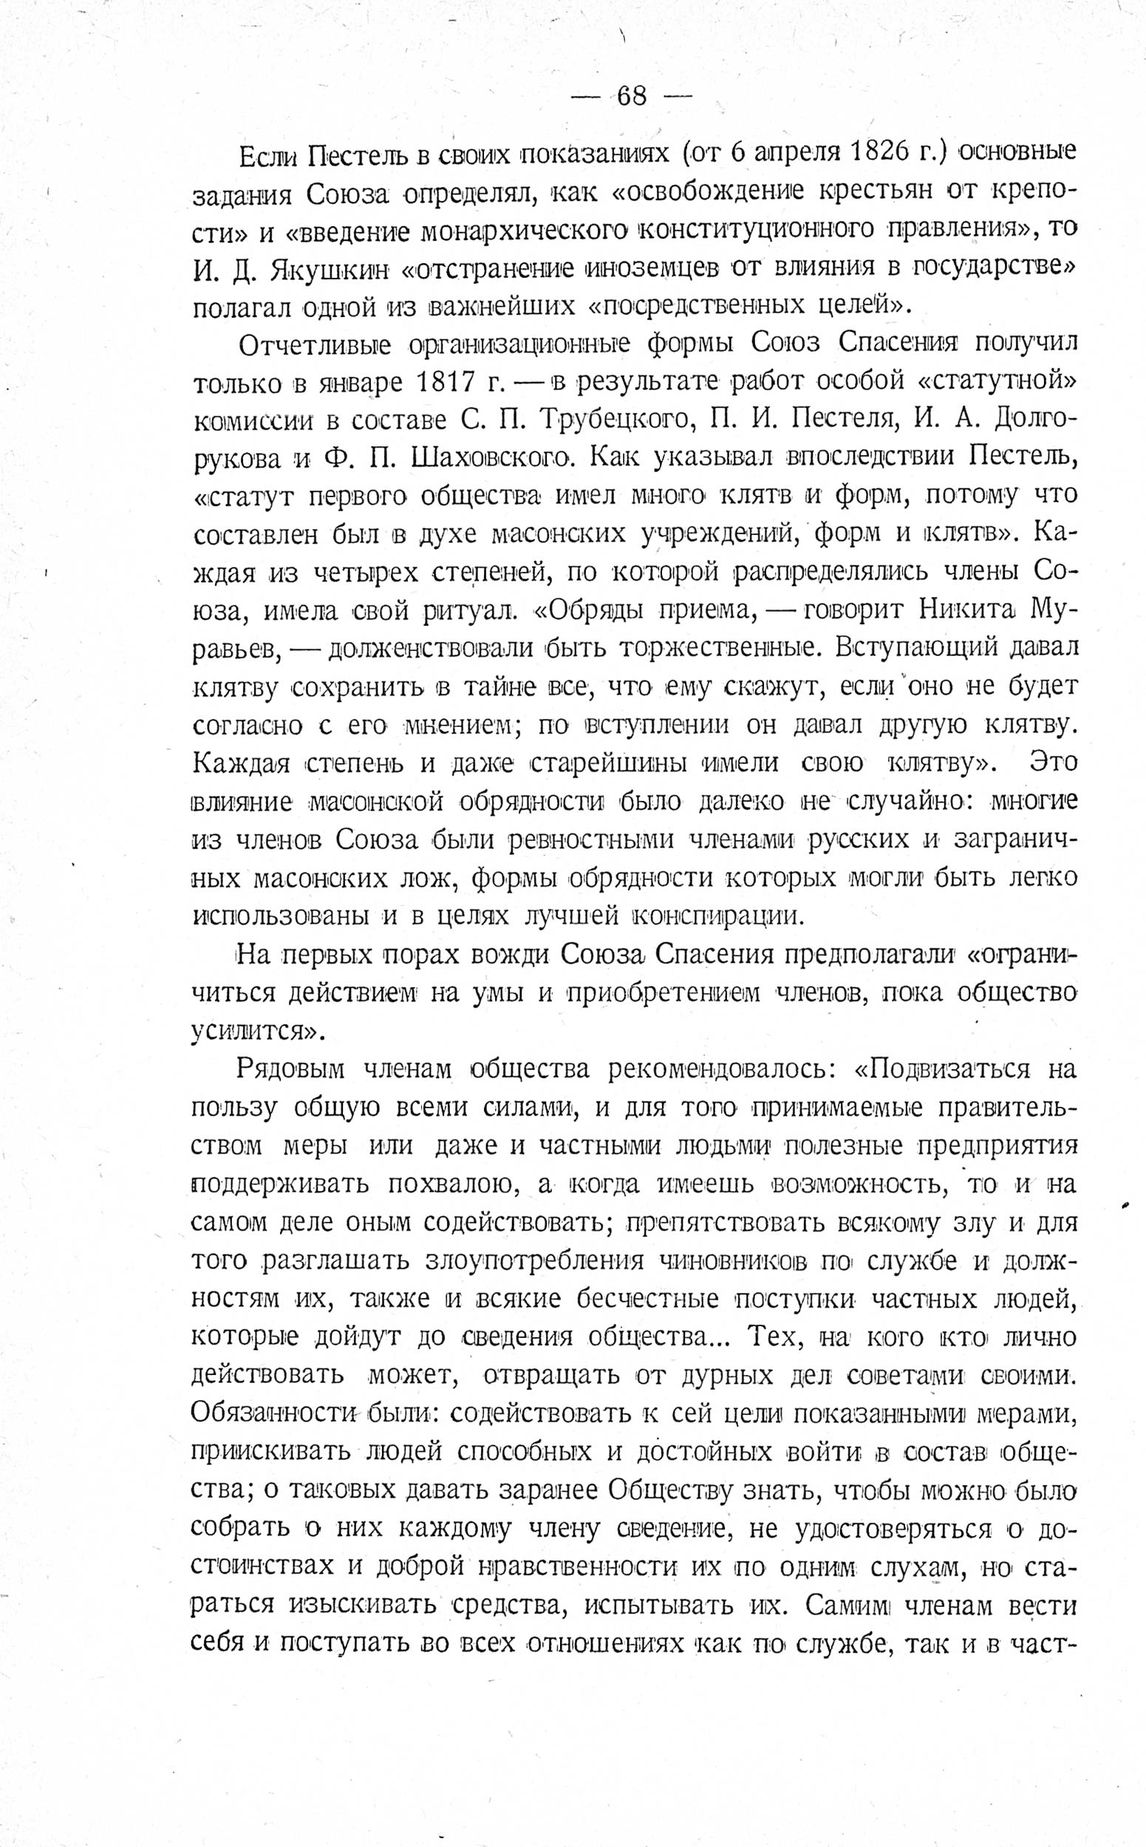 http://elib.shpl.ru/pages/625651/zooms/7